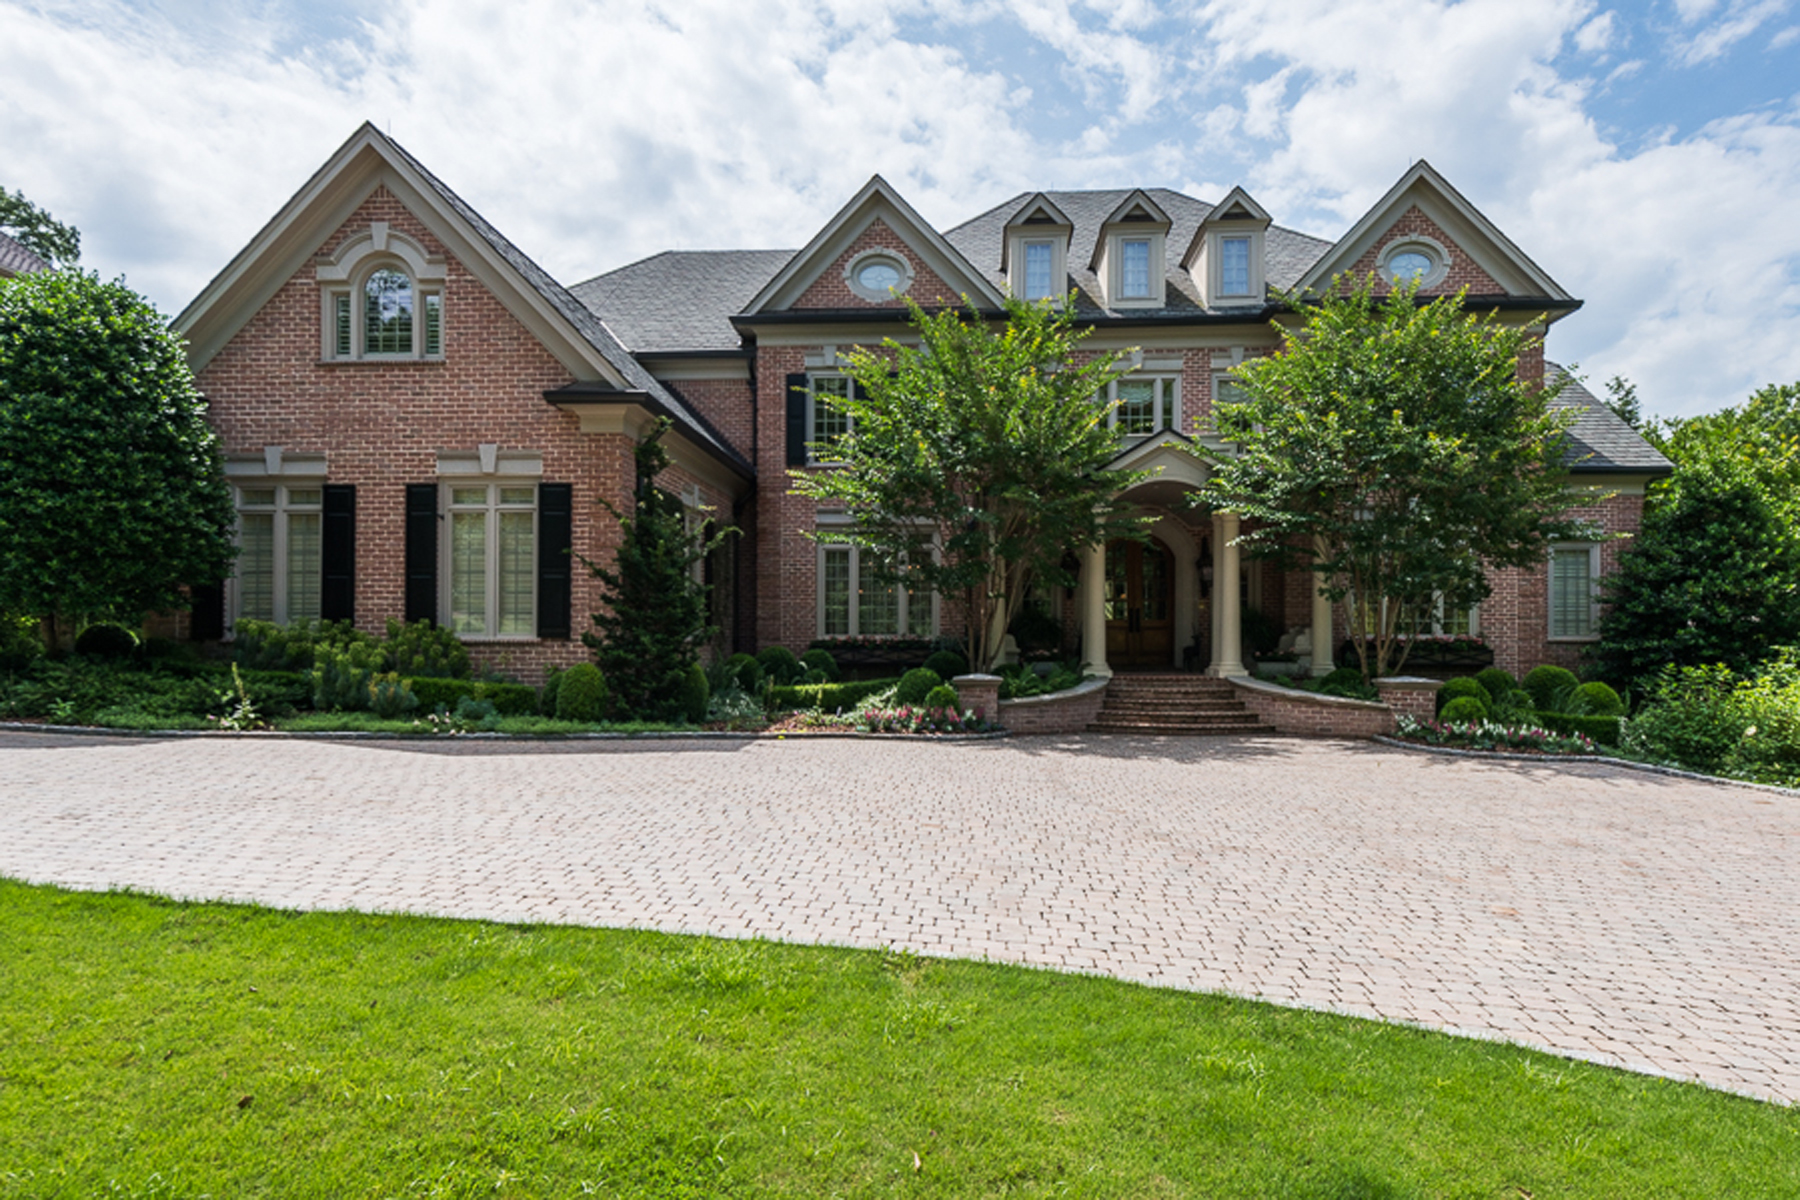 Casa Unifamiliar por un Venta en A Masterpiece In Johns Creek Most Prestigious Gated Golf Community 490 Covington Cove Alpharetta, Georgia, 30022 Estados Unidos